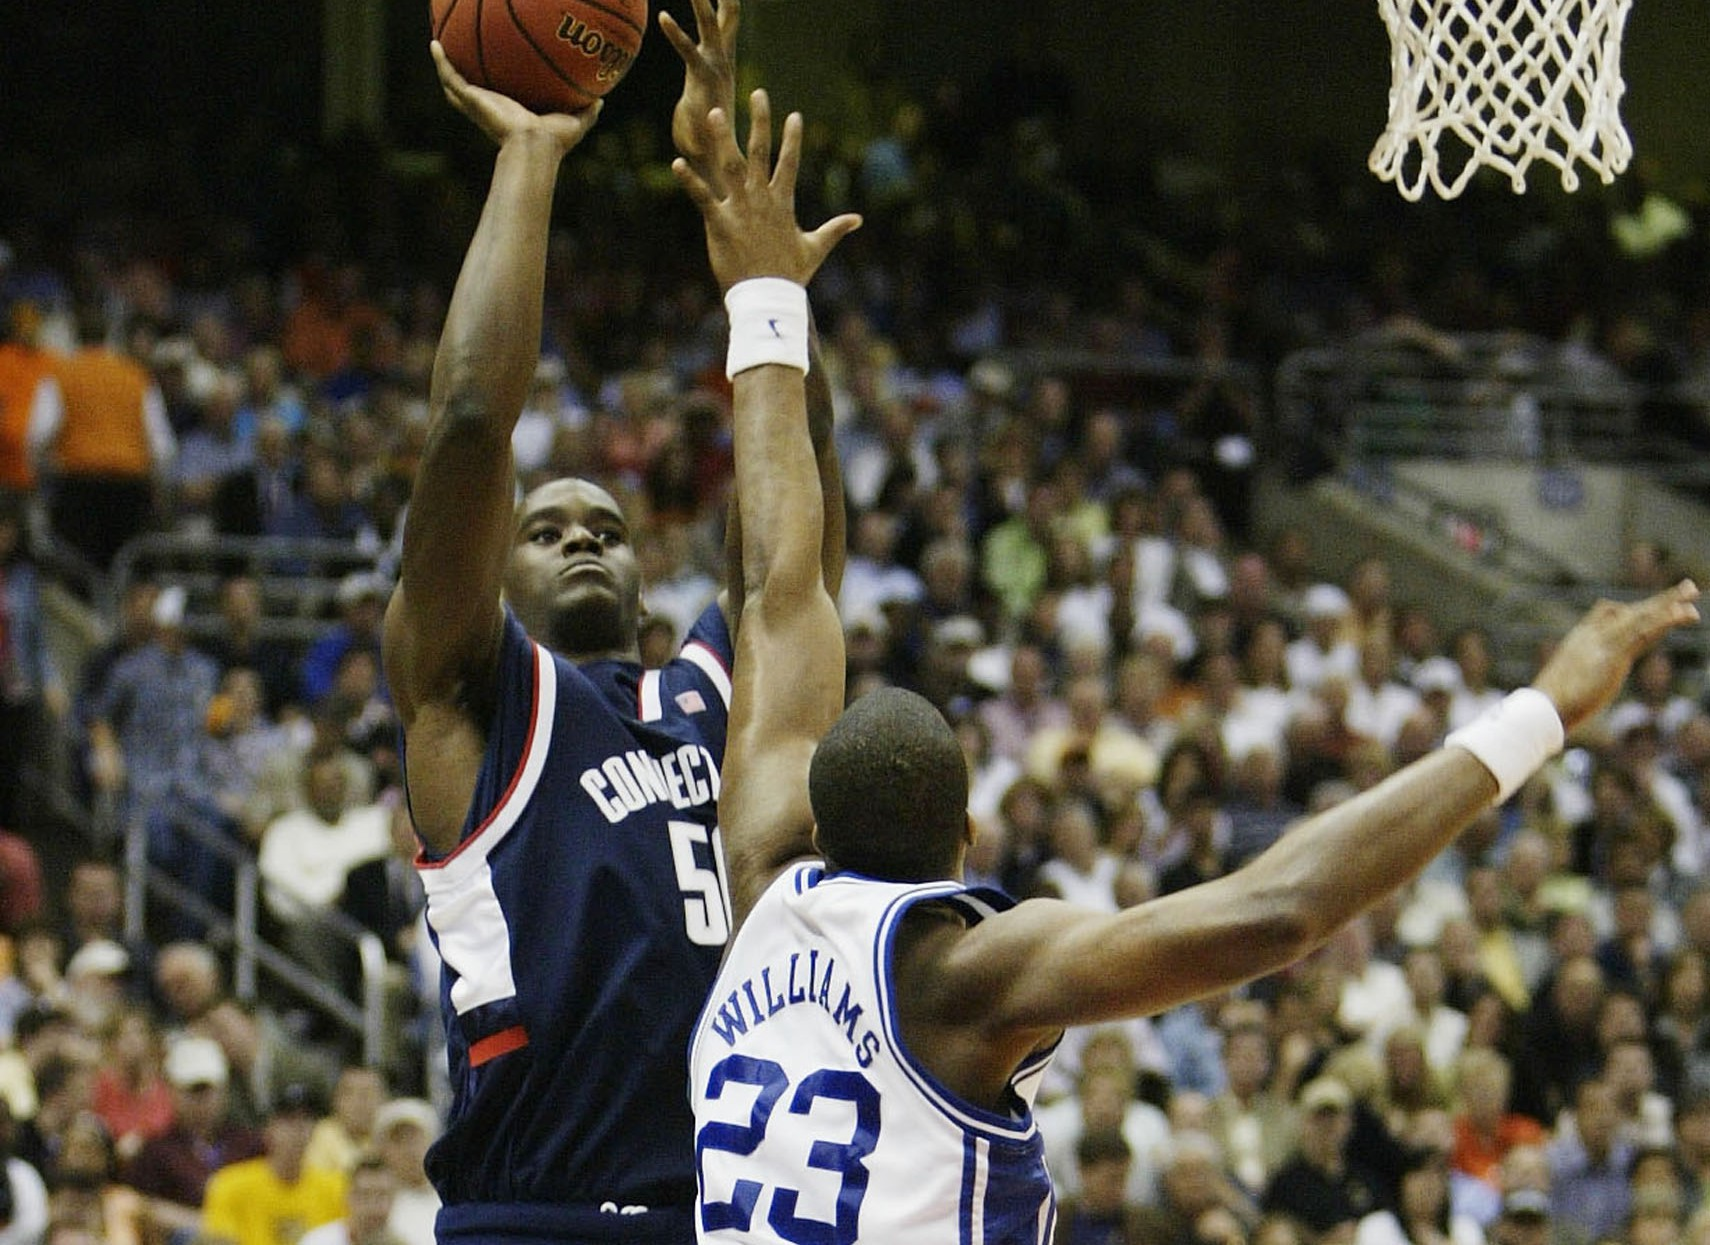 Throwback Thursday: UConn's comeback against Duke in the 2004 Final Four  (VIDEO) - College Basketball | NBC Sports